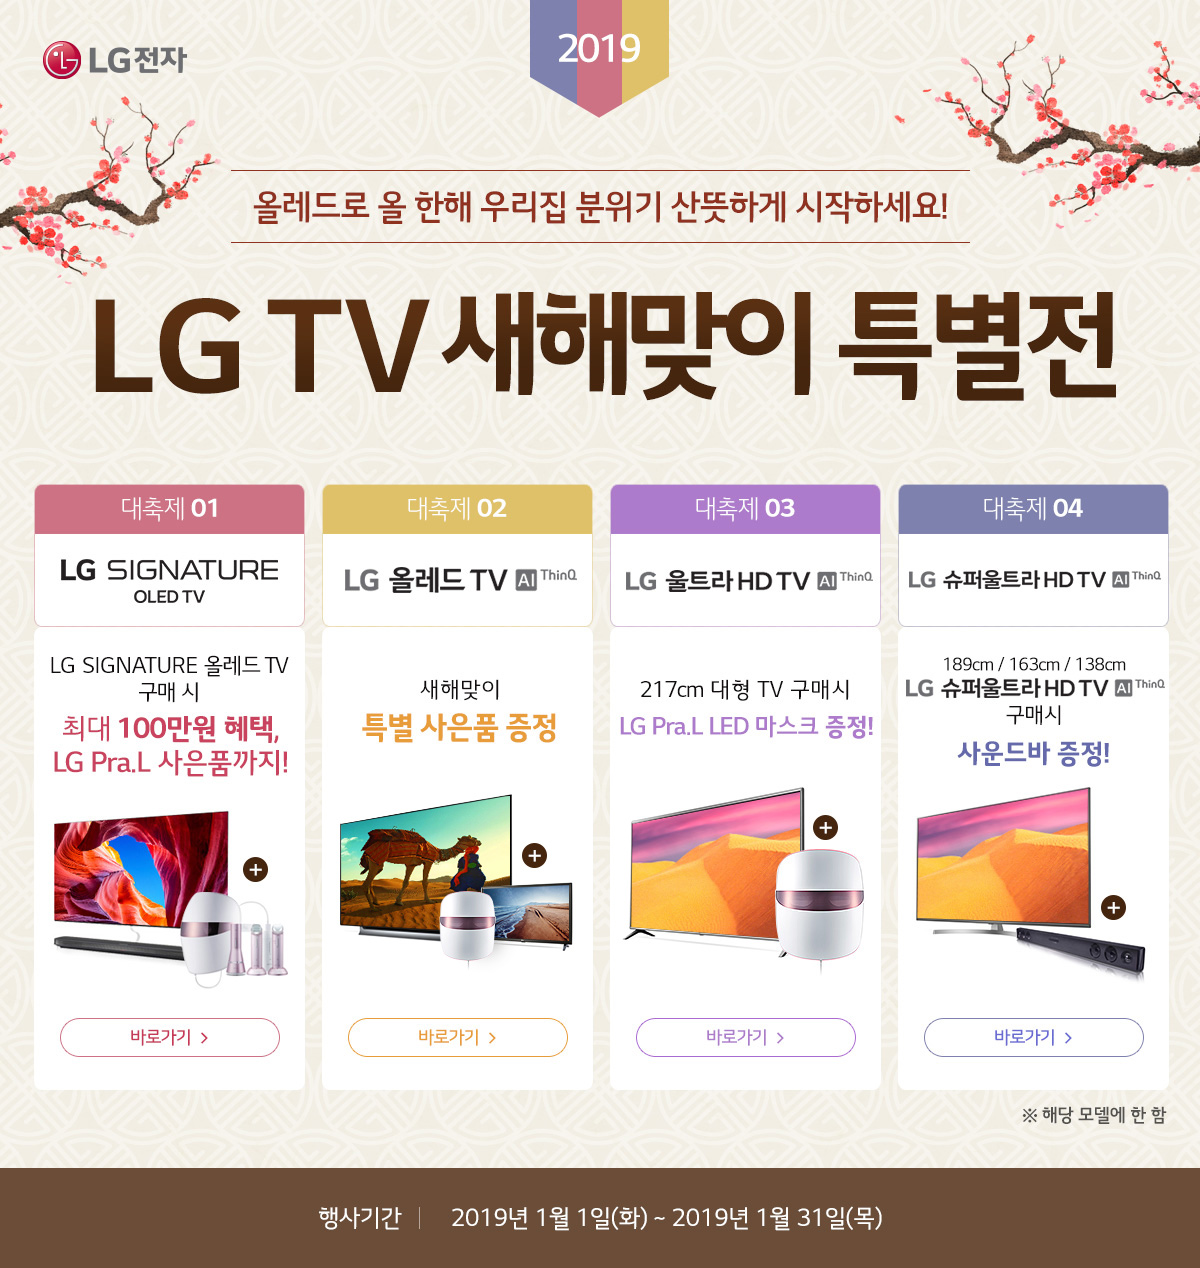 lge_co_kr_20190111_184805.png